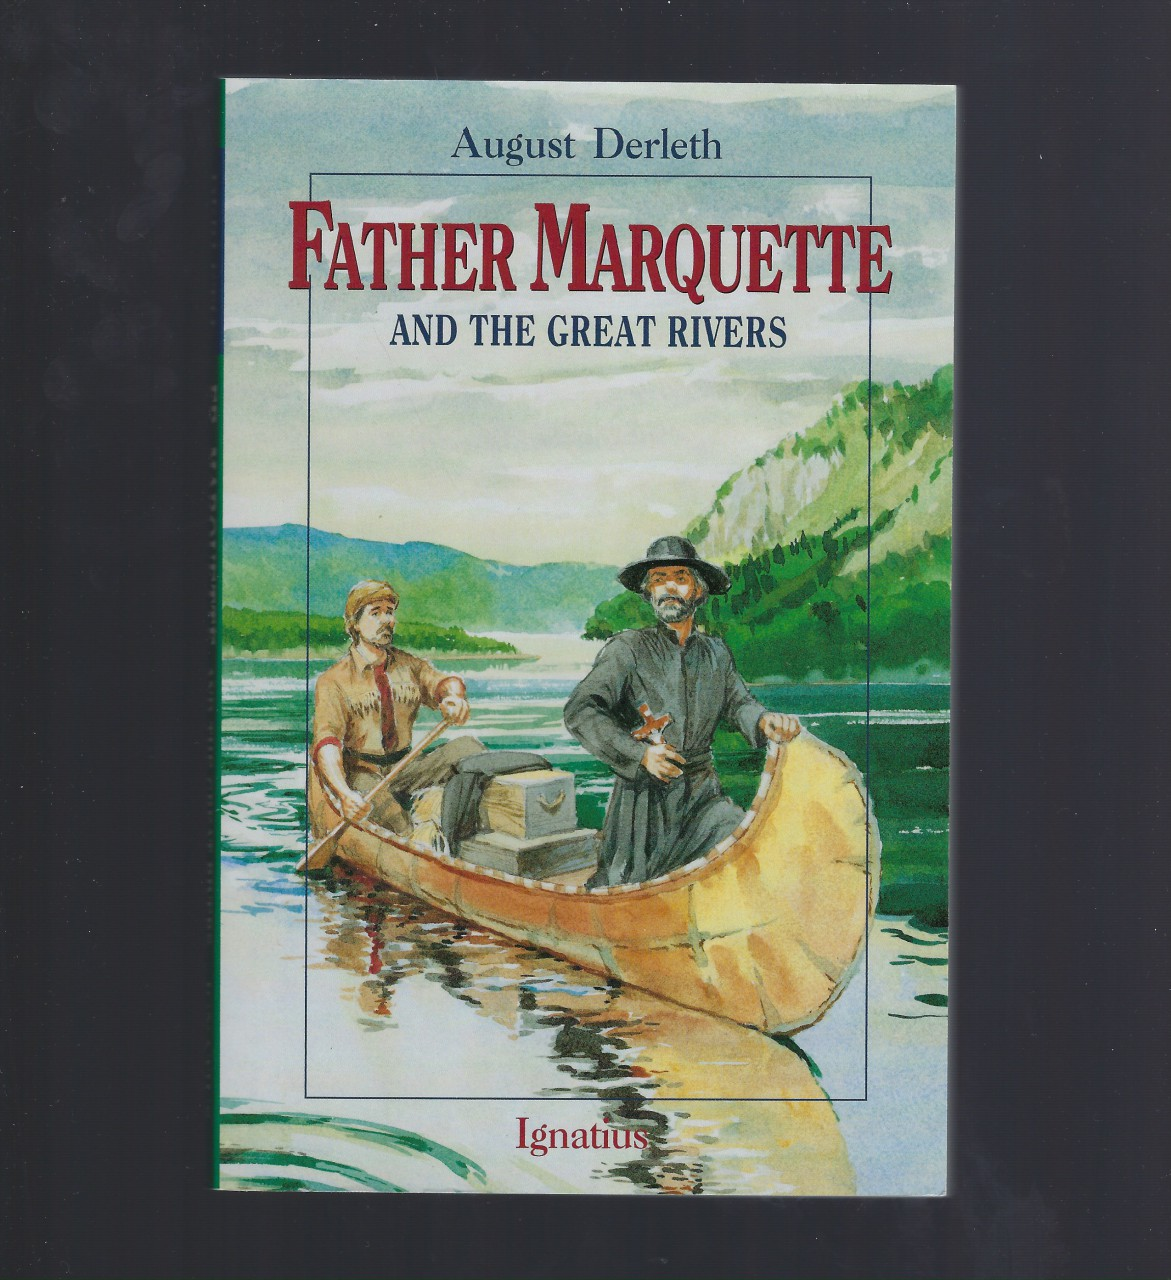 Father Marquette and the Great Rivers Vision Books, August William Derleth; Illustrator-H. Lawrence Hoffman